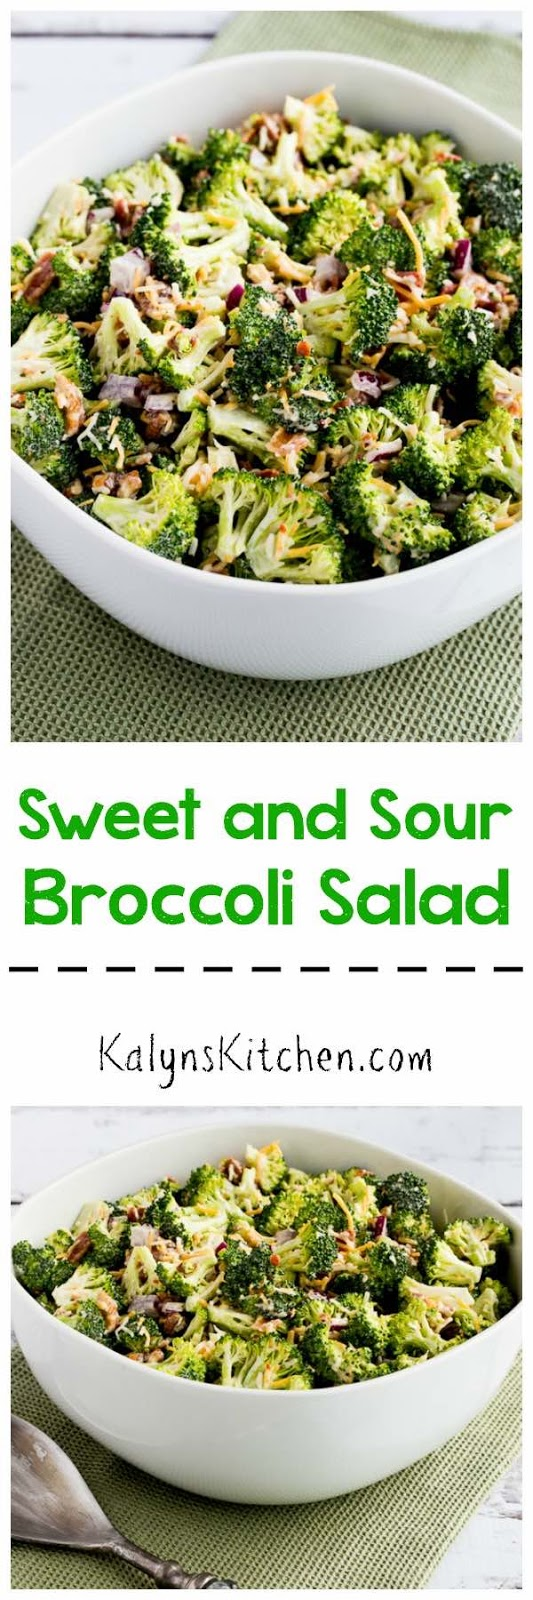 Barely-Blanched Broccoli Salad With Feta And Fried Almonds Recipe ...